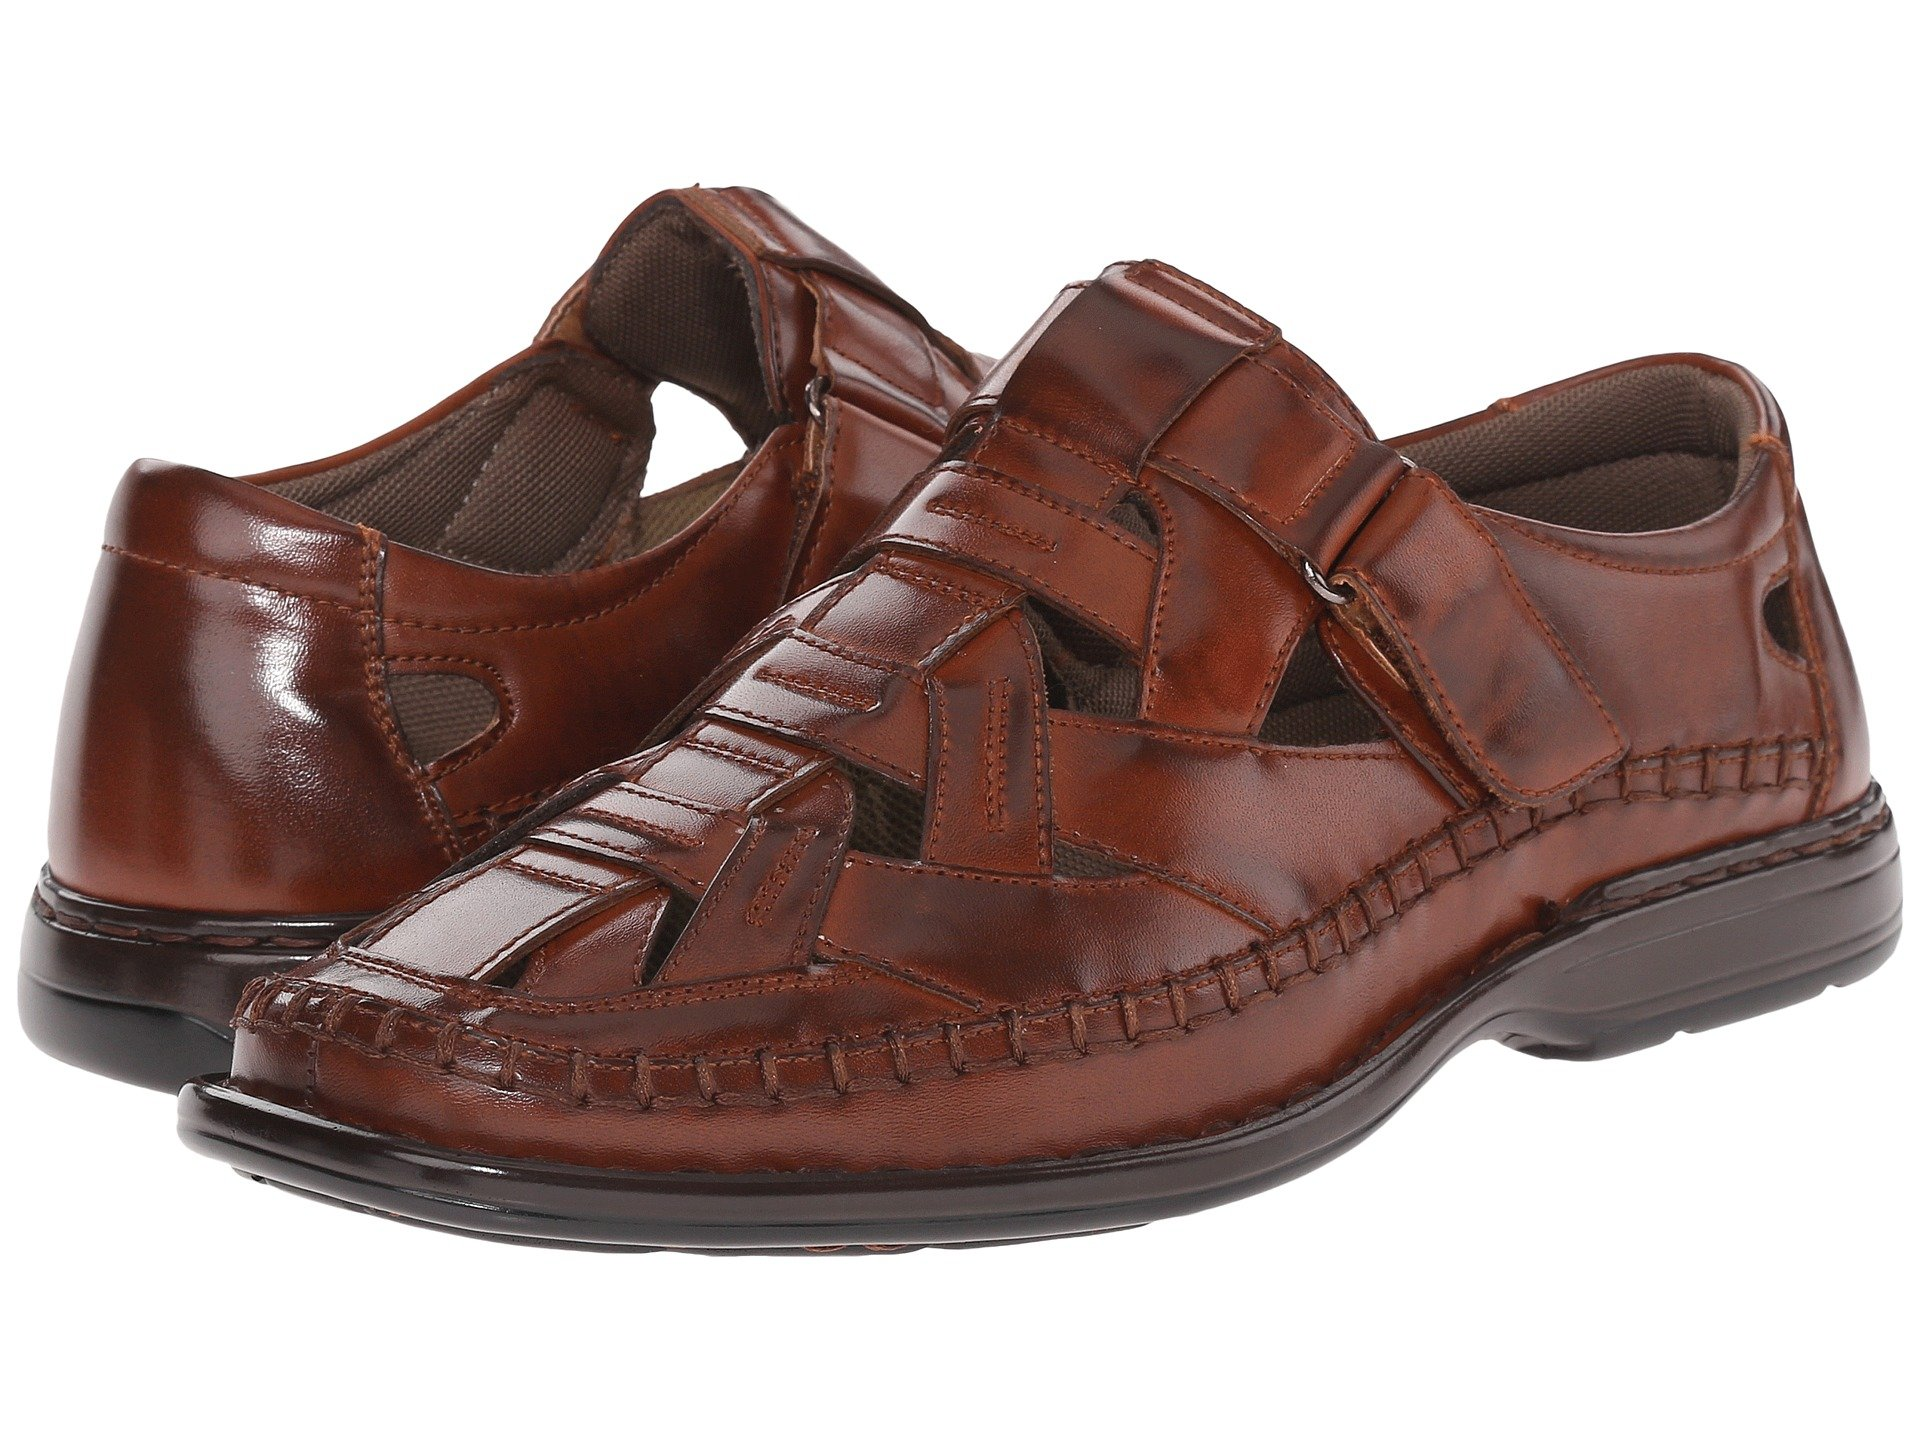 Stacy Adams Brown Shoes Amazon